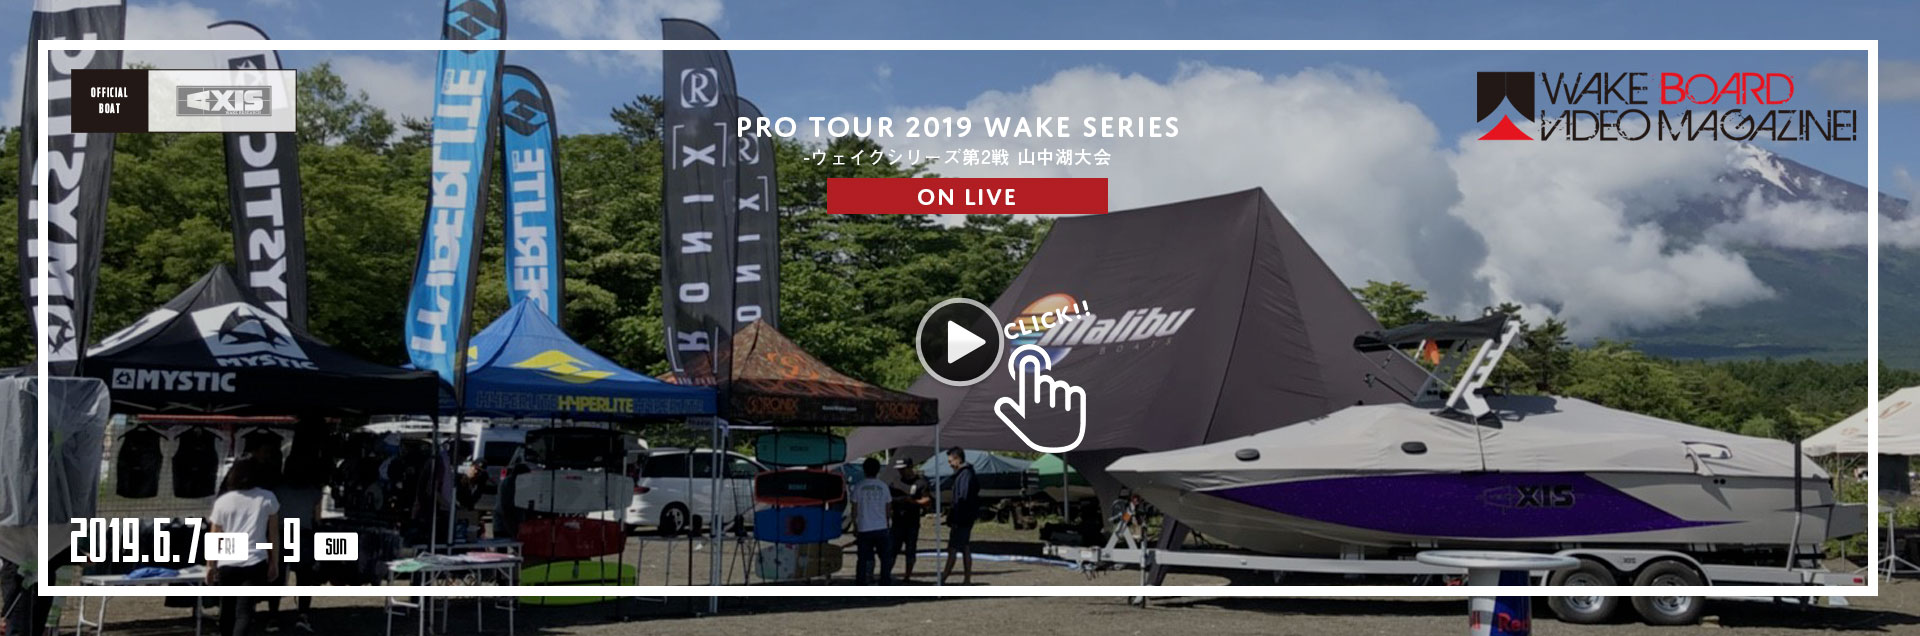 2019_jwba_main_wakeseries_02_001